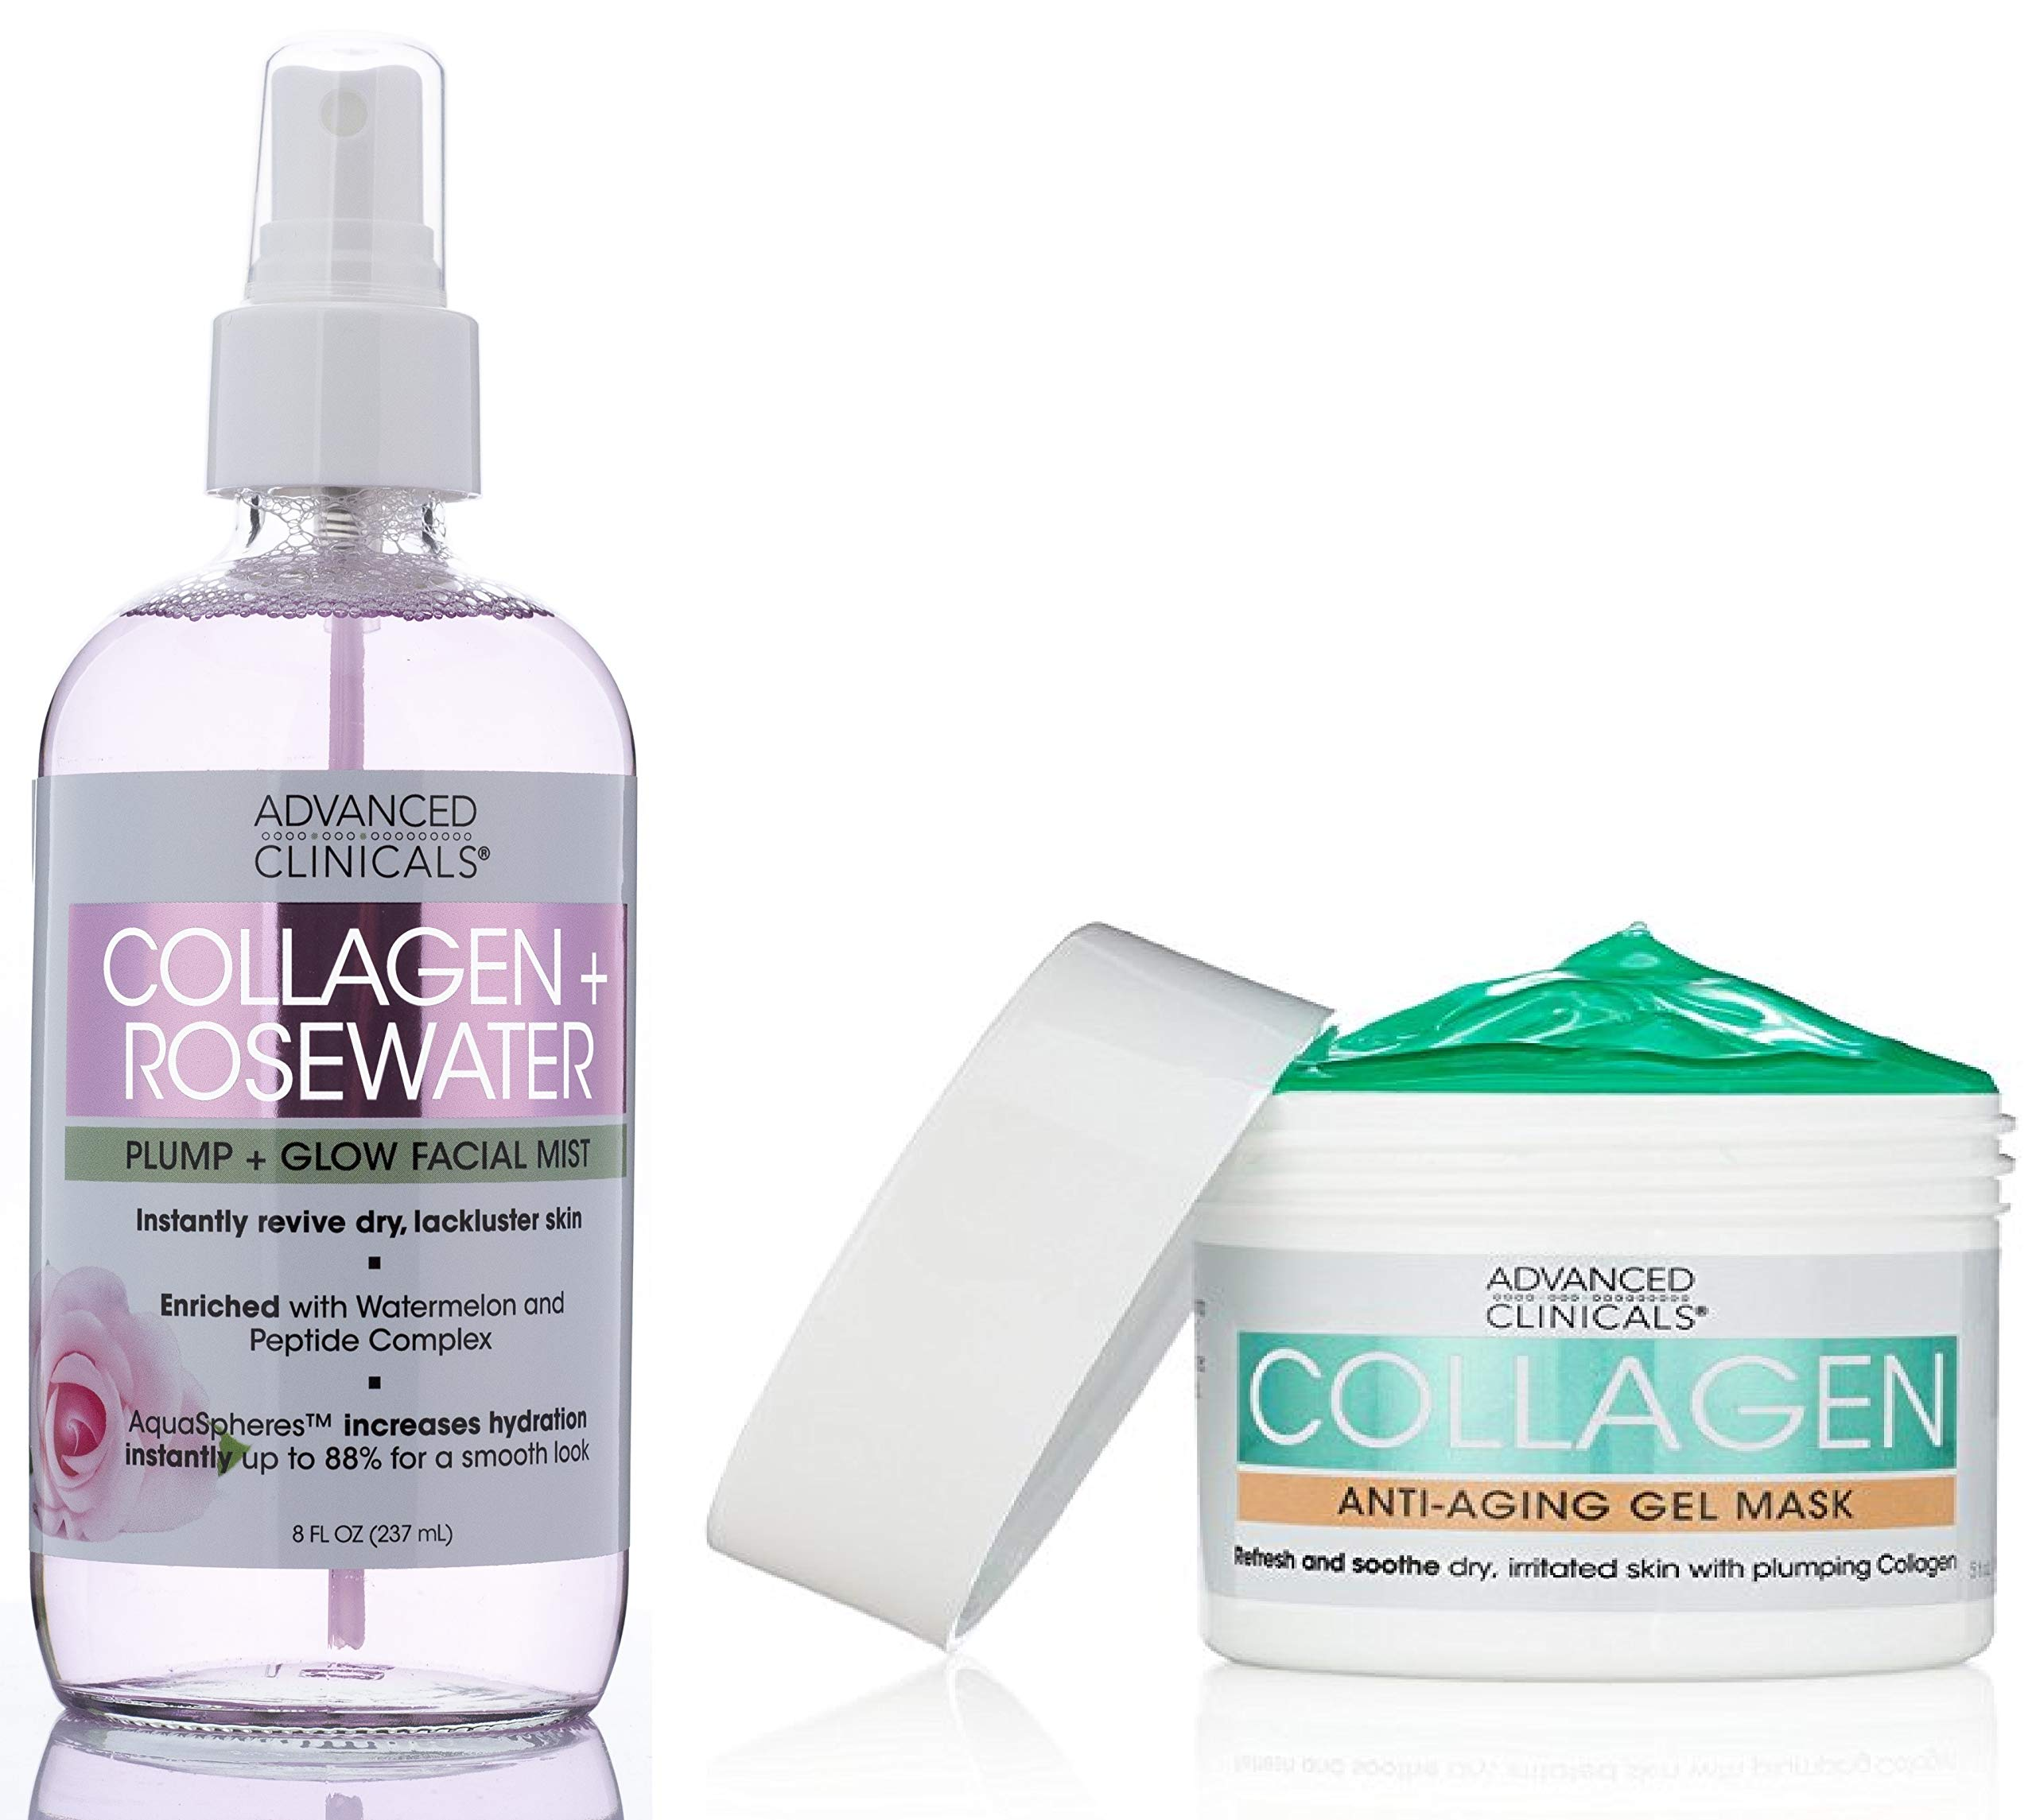 Advanced Clinicals Collagen Anti-Aging Skin Care Set for Face. Collagen Gel Mask Plumps & Moisturizers Dry Skin. Collagen + Rosewater Facial Mist Toner Hydrates Dry Skin. Set of 2.